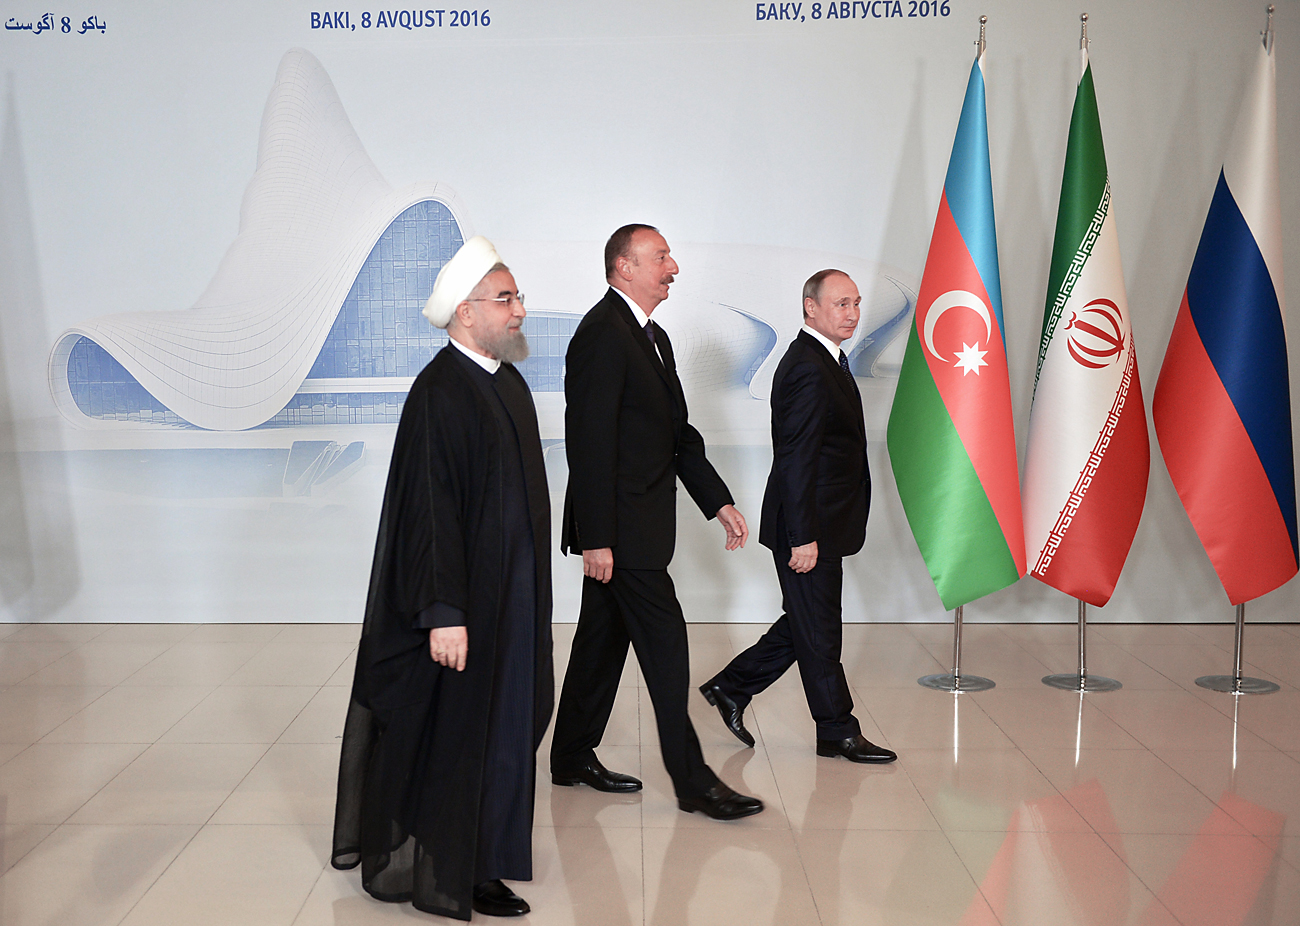 Russian President Vladimir Putin, President of Azerbaijan Ilham Aliyev and Hassan Rouhani, President of the Islamic Republic of Iran, during a photo session prior to the beginning of the trilateral meeting in Baku, on Aug. 8, 2016.